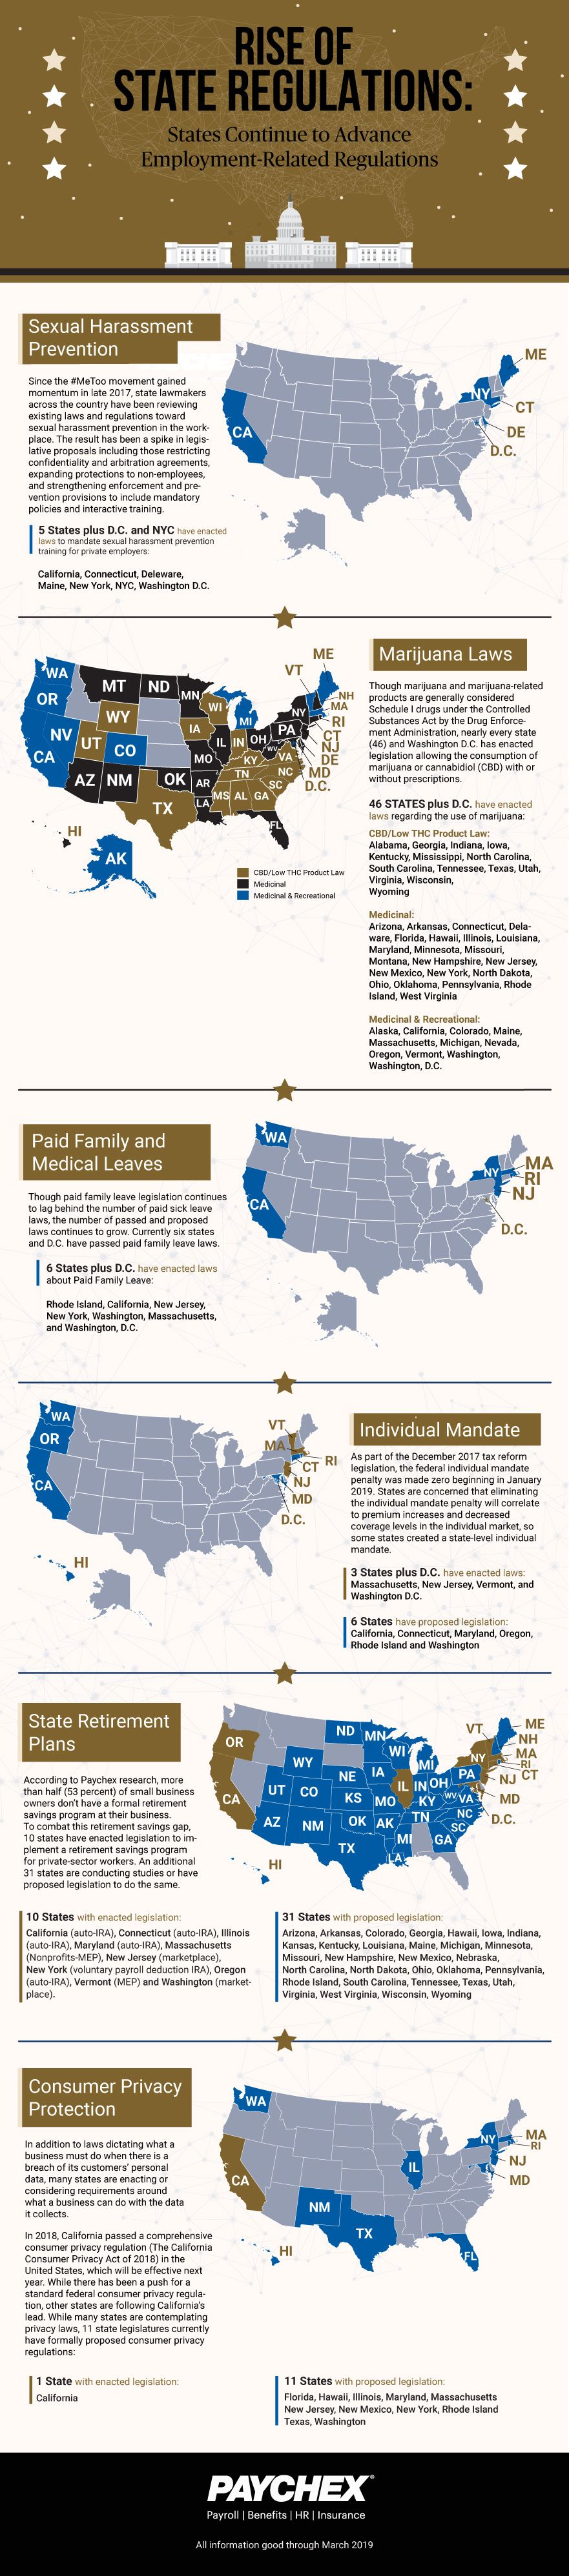 Infographic about state regulations sexual harassment prevention marijuana laws paid family and medicial leave individual mandate state retirement plans consumer privacy laws